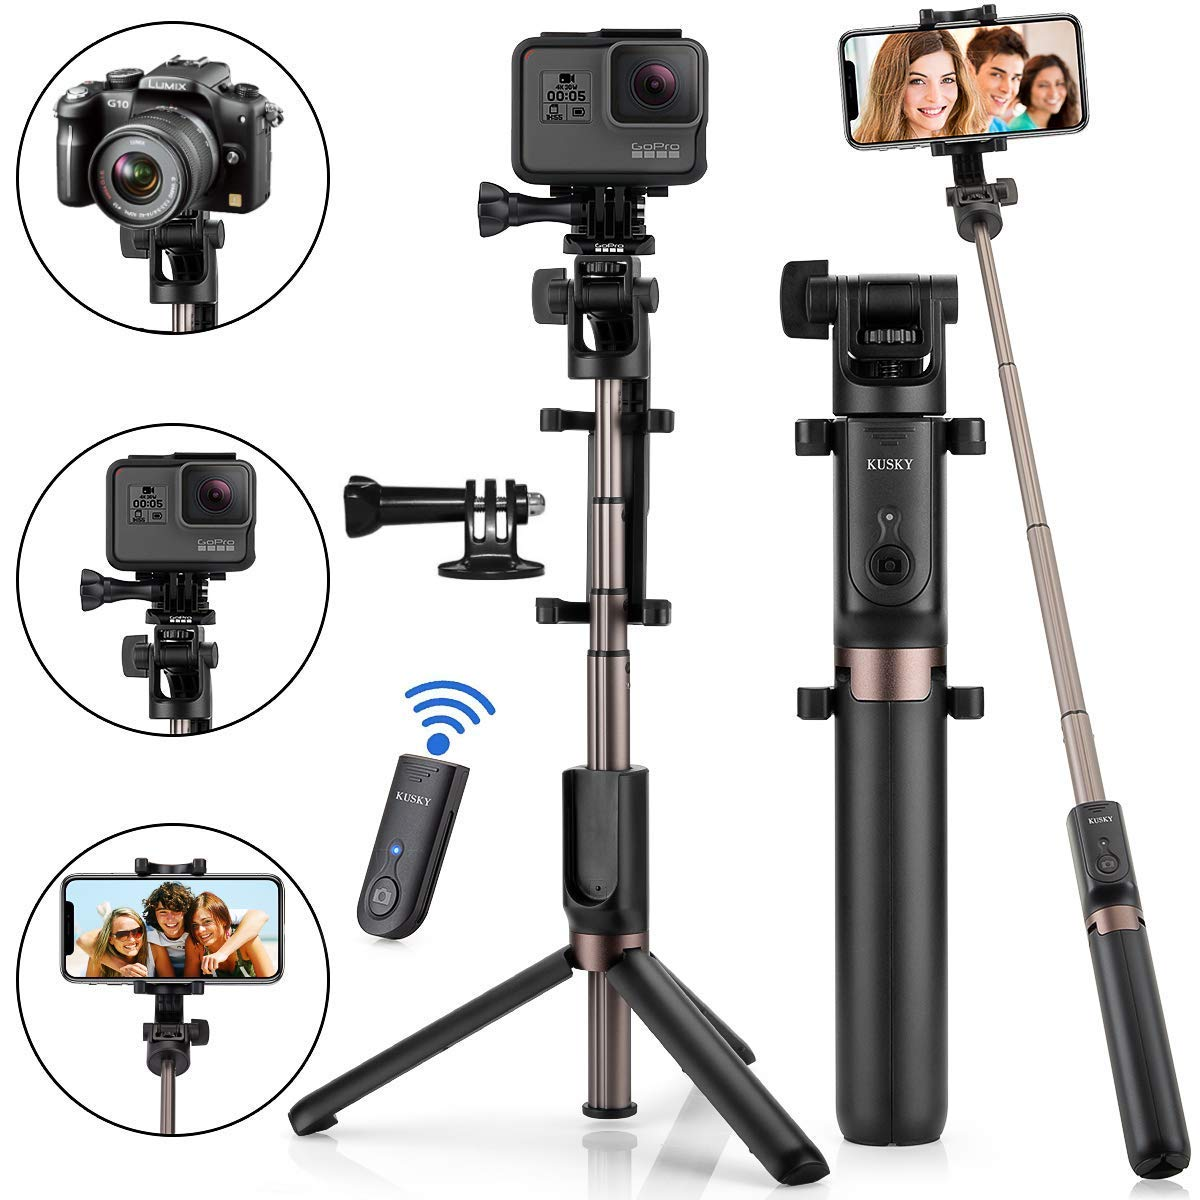 Selfie Stick Bluetooth, 4-in-1 Extendable Selfie Stick Tripod with Wireless Remote Shutter for iPhone X/8/8P/7/7P/6s/6P, Galaxy S9/S9 Plus/S8/S7/ S6/S5/Note 8, Google, Huawei and More by KUSKY